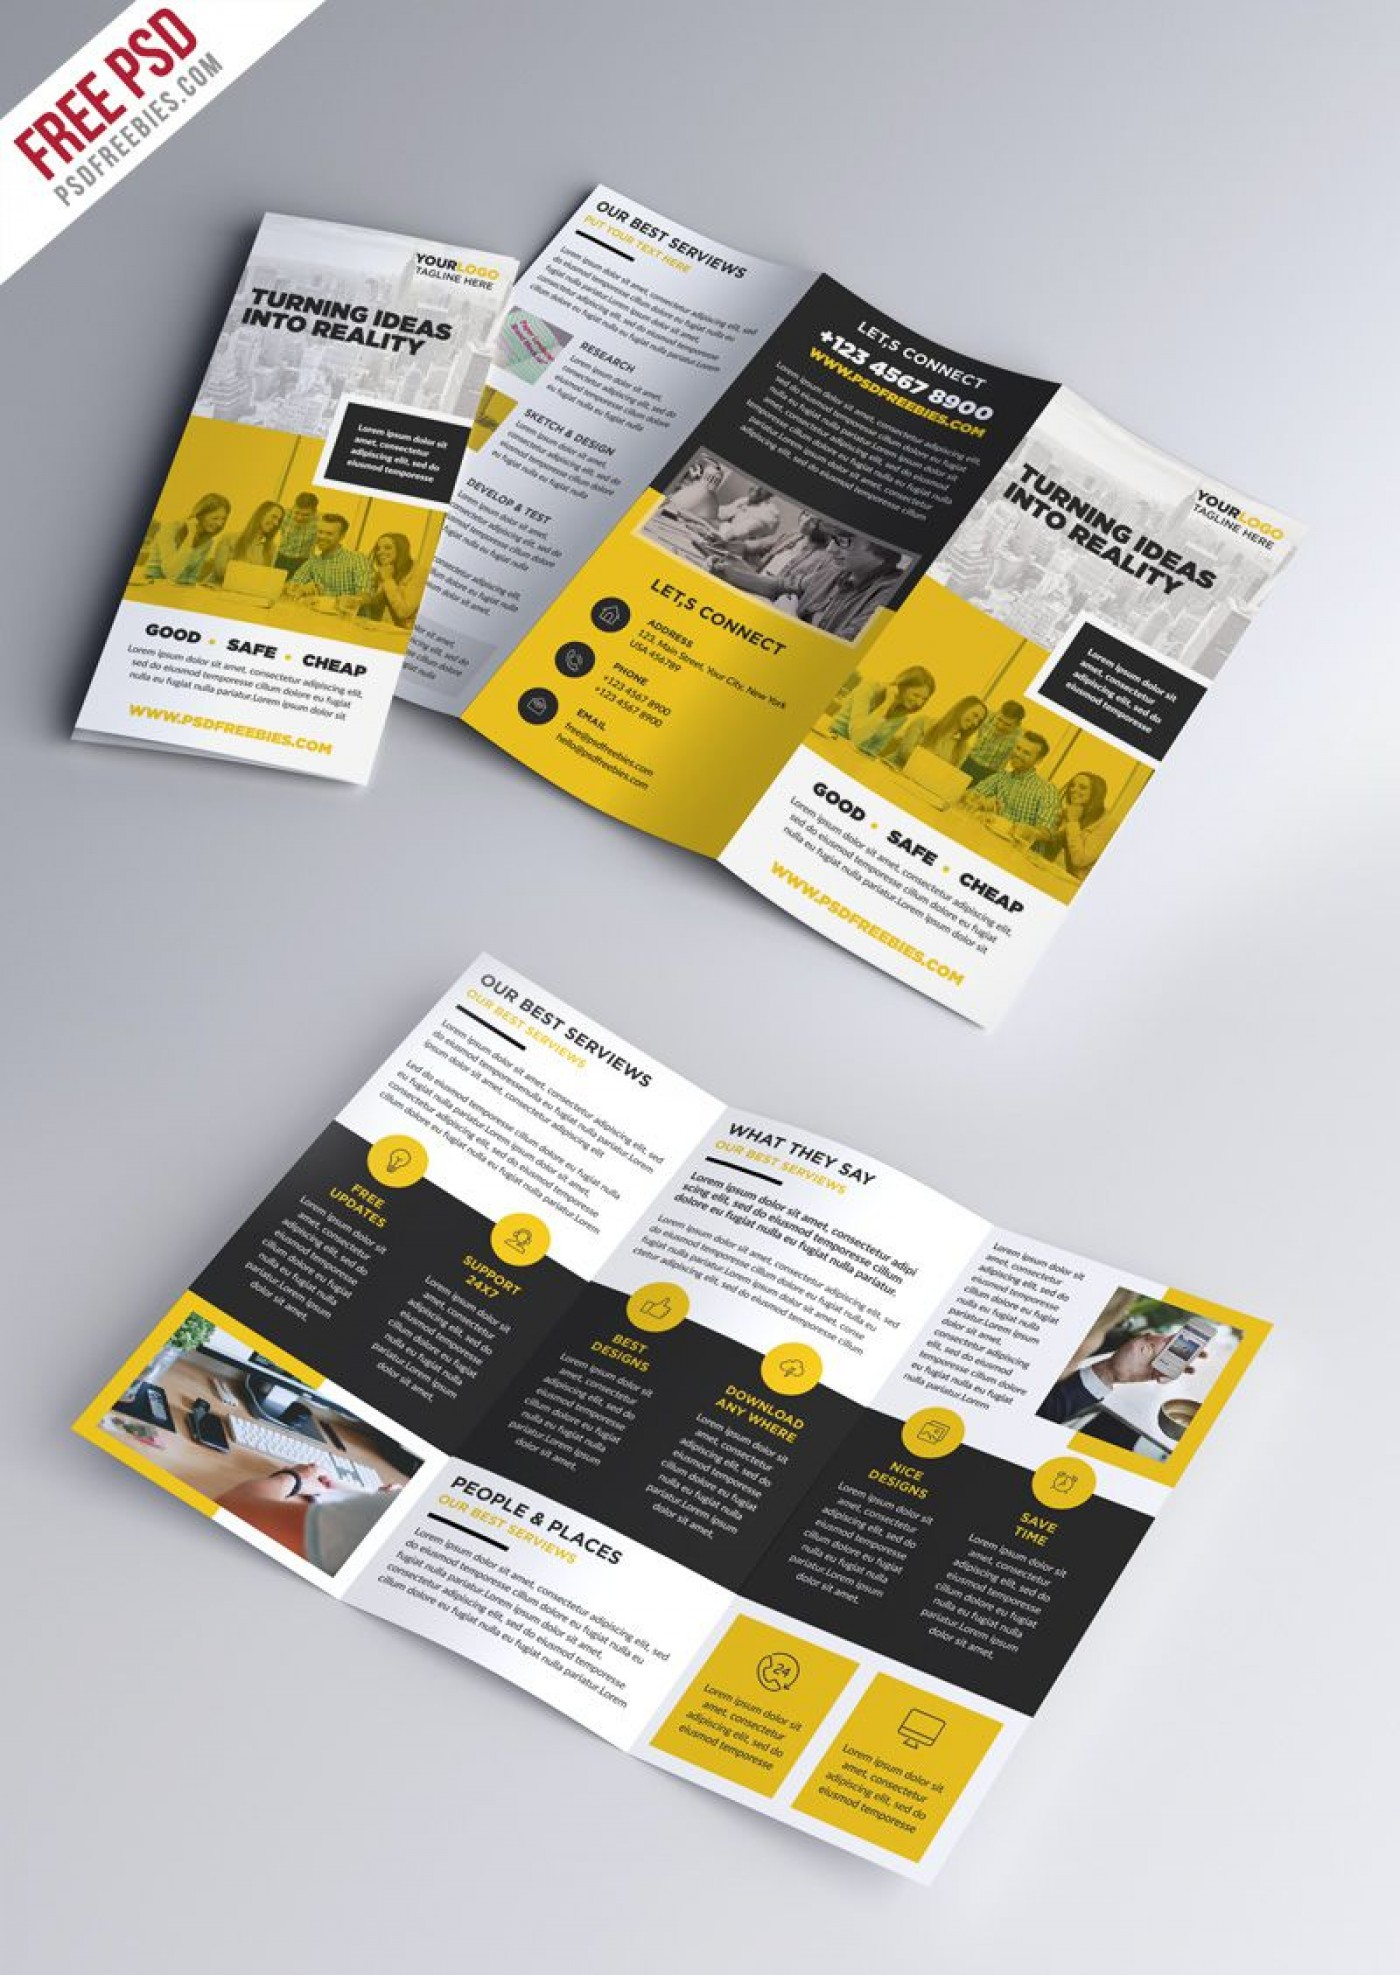 008 Excellent Three Fold Brochure Template Psd Photo  Free 3 A4 Tri Download1400